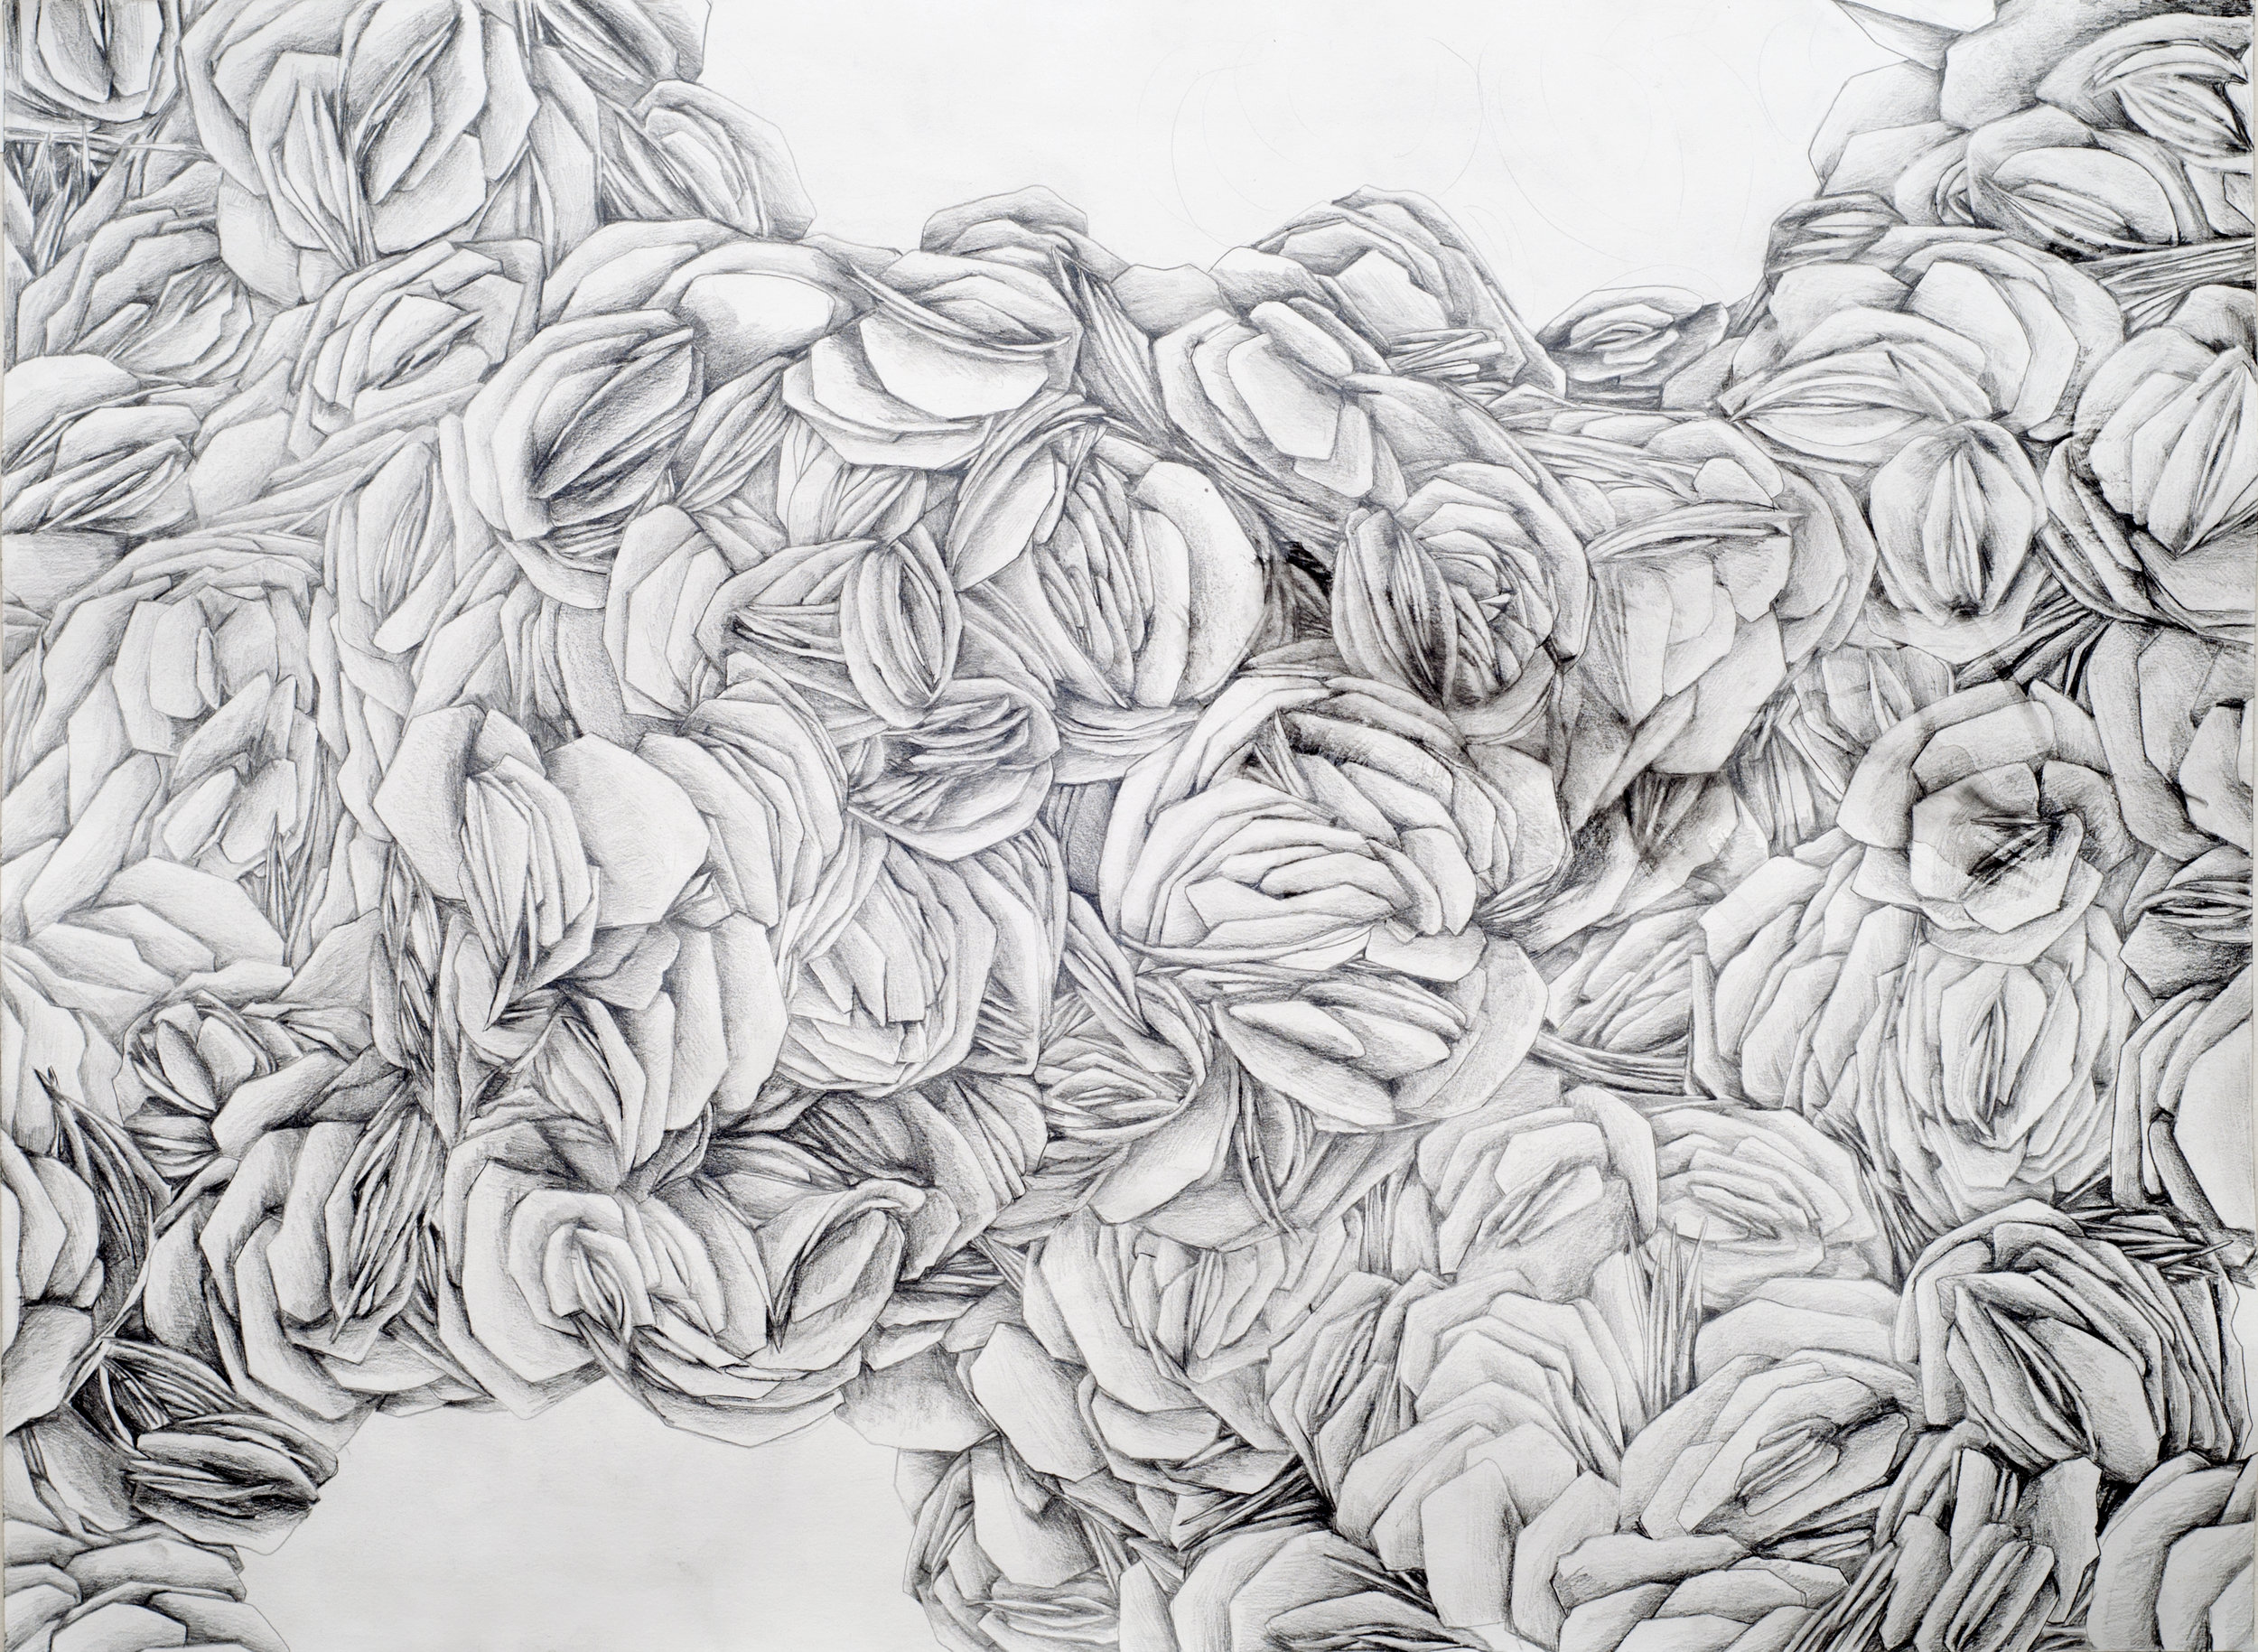 """100x Hematite  water-soluble graphite pencil on paper, 22"""" x 30""""   2014"""